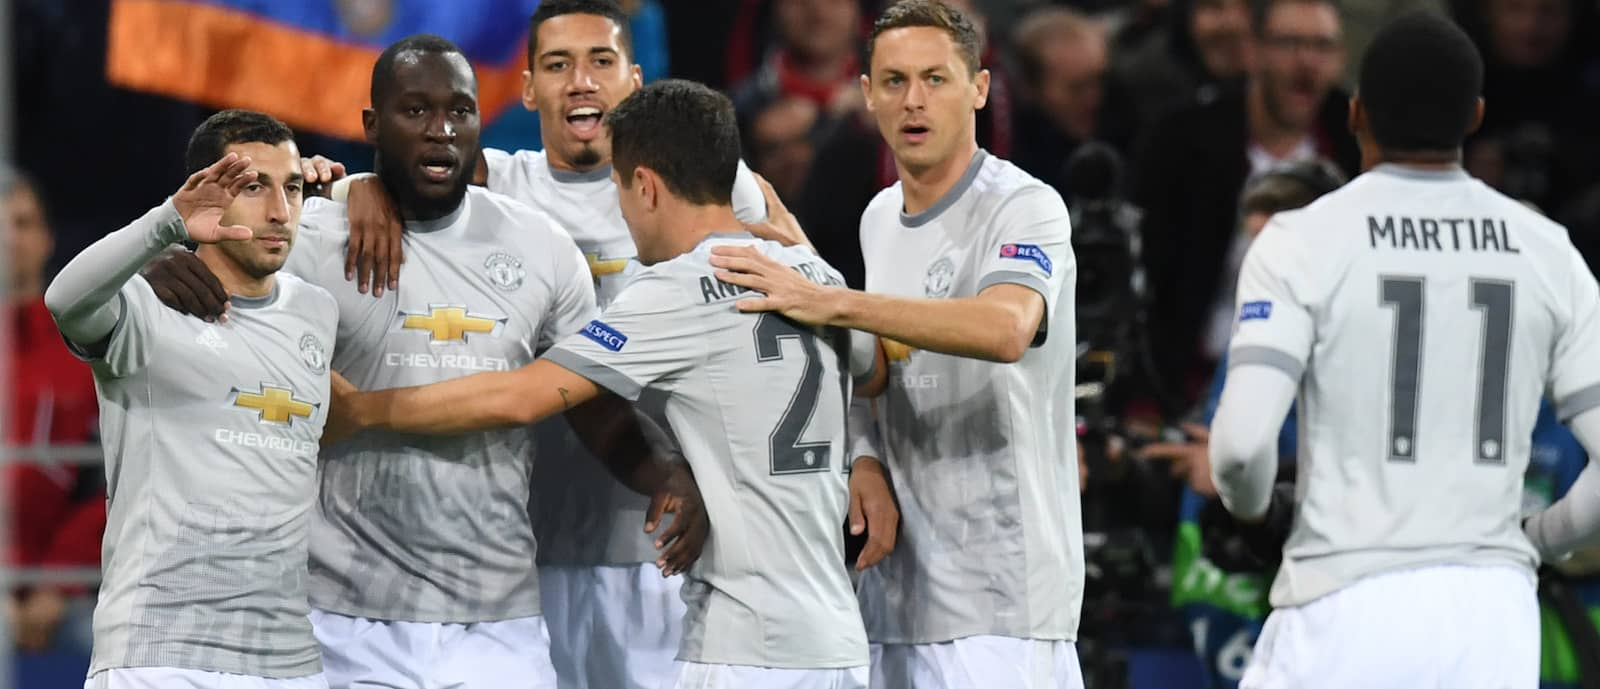 Chris Smalling full of praise for Romelu Lukaku at Manchester United